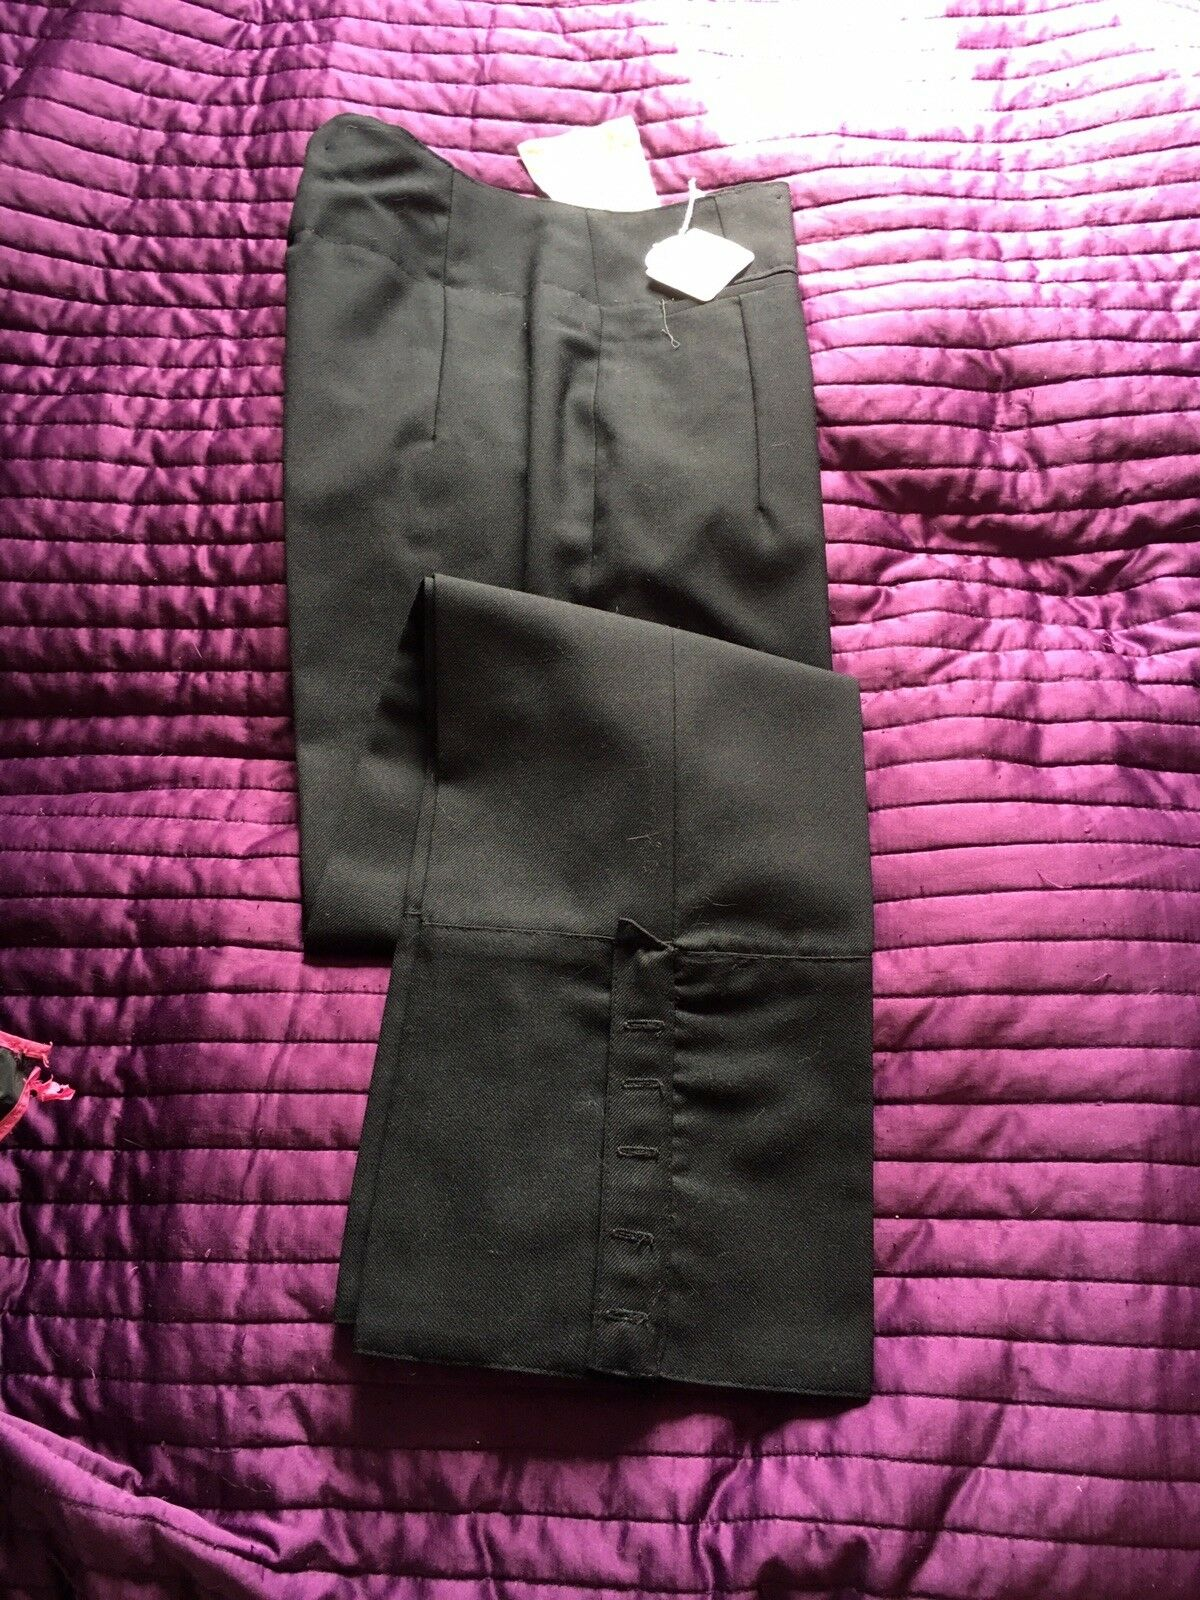 Traditional Spanish Riding Trousers made by Zaldi in sizes 32 & 42